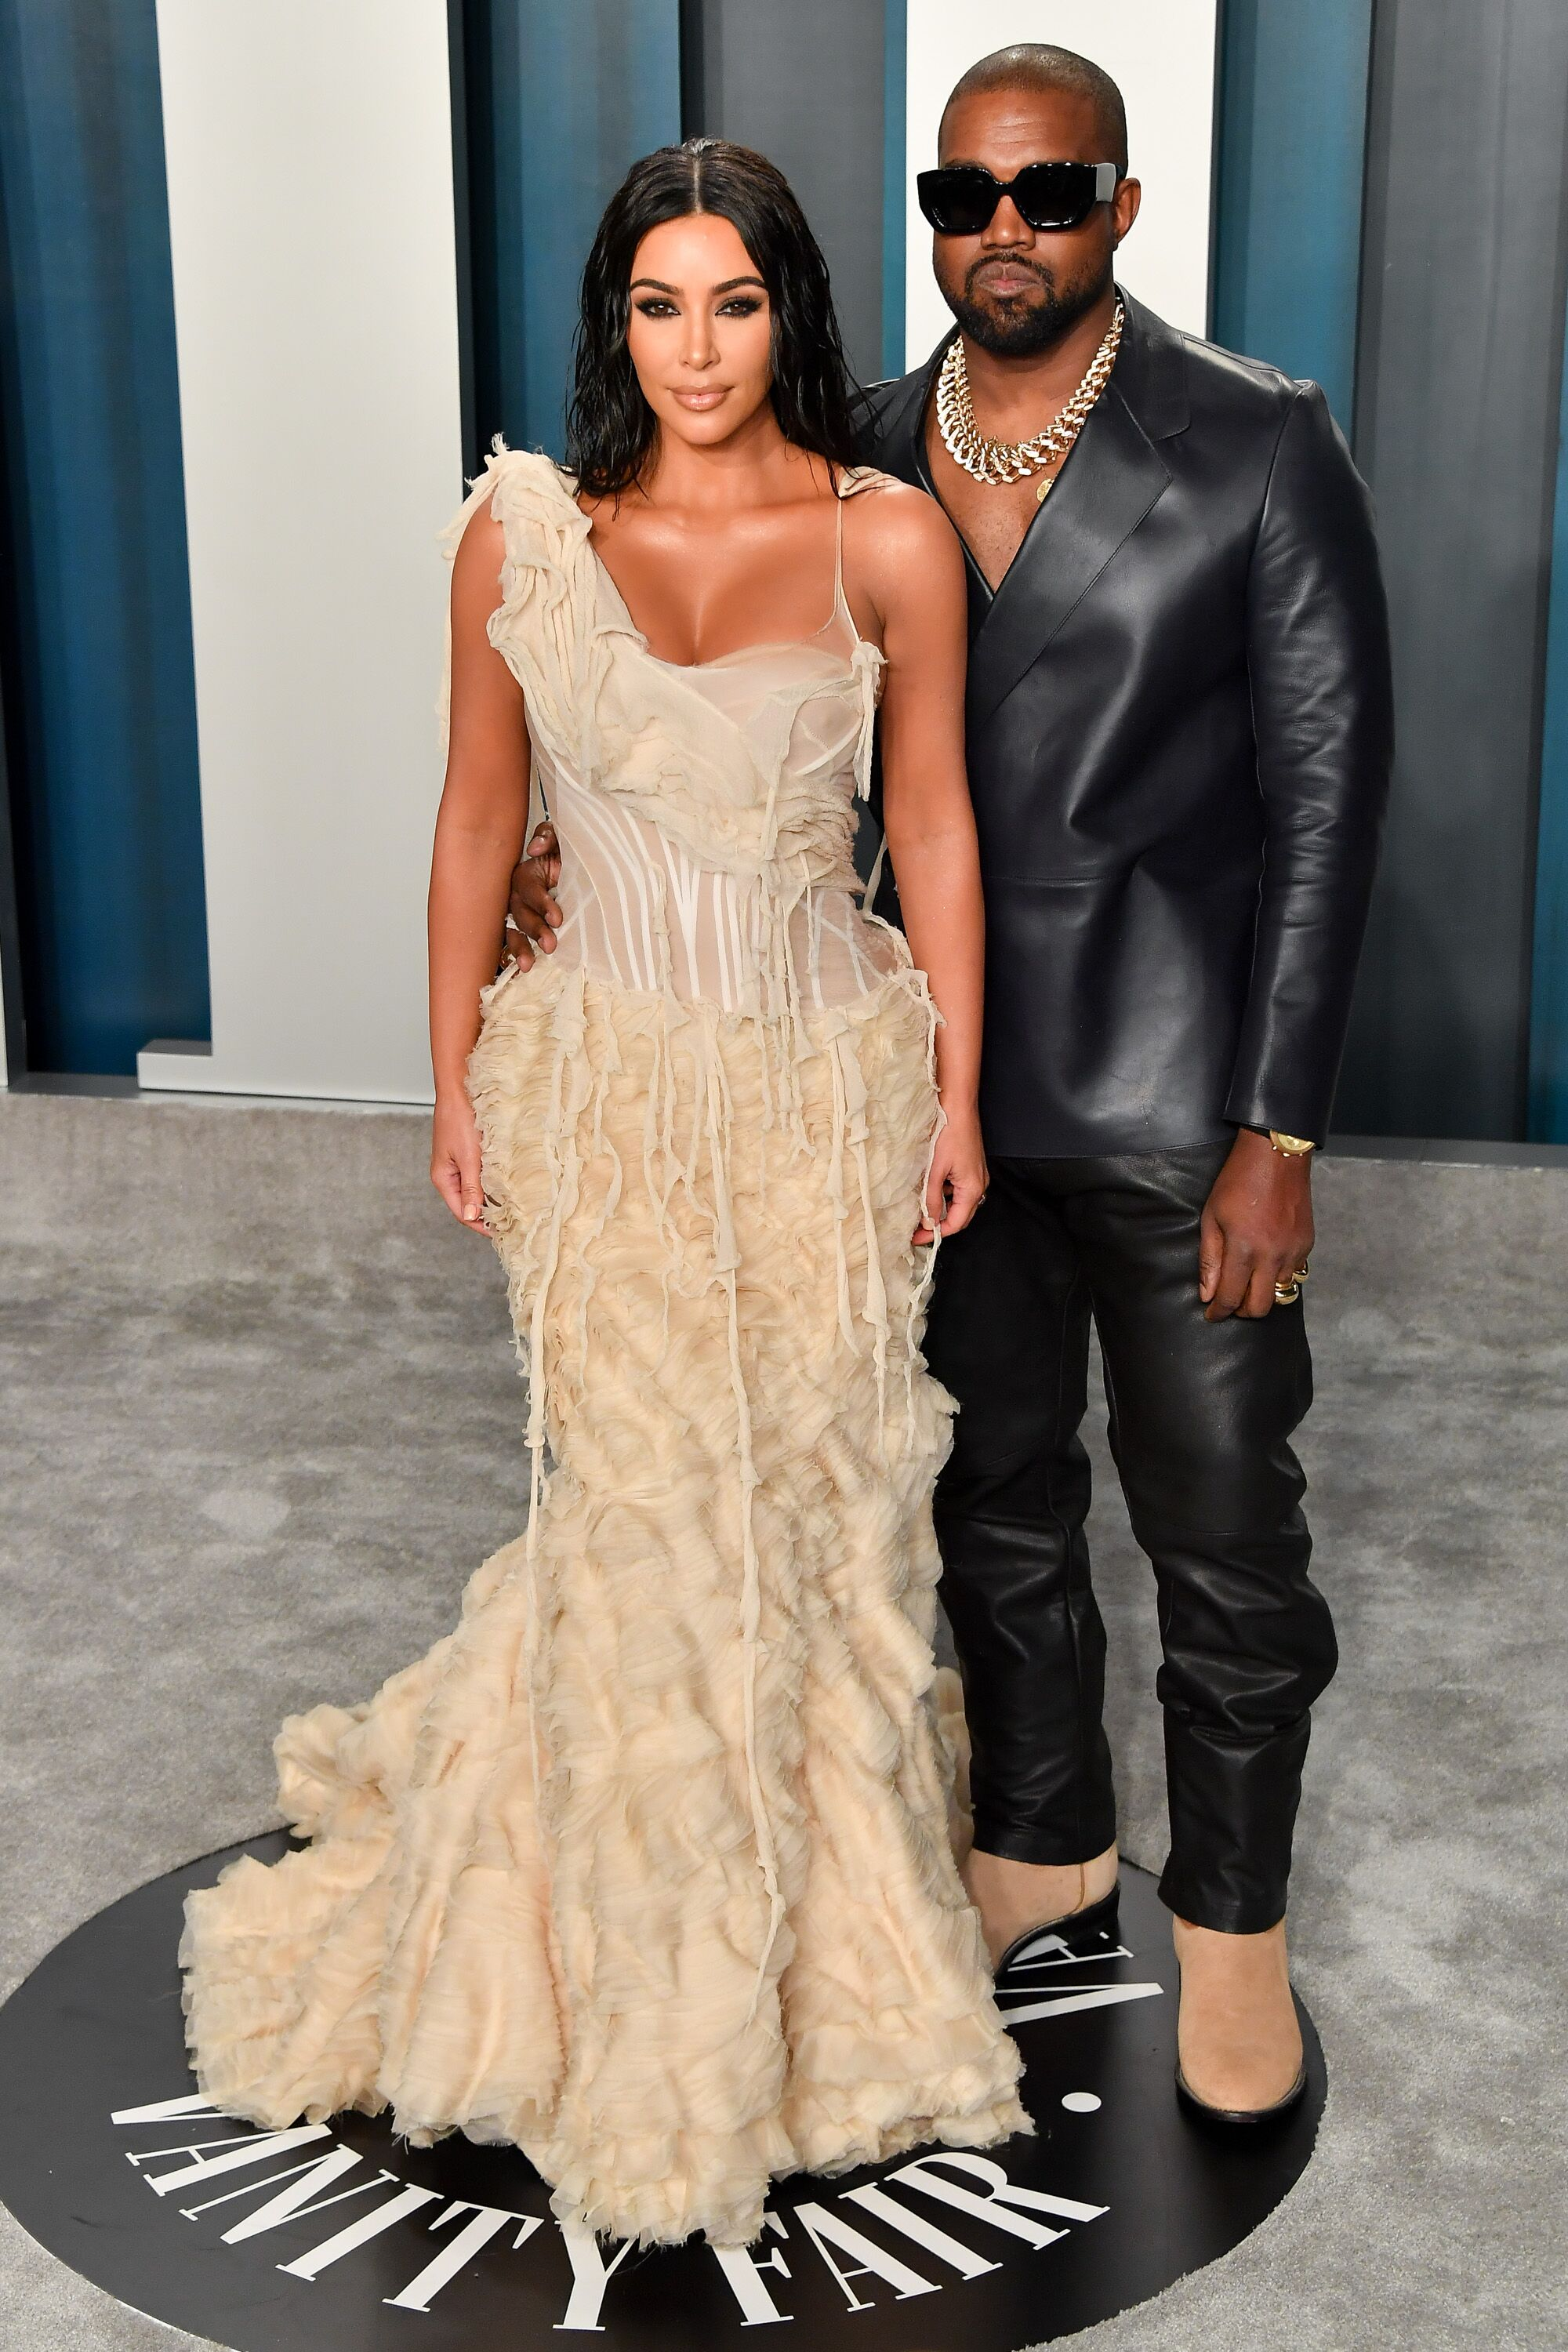 Kim Kardashian and Kanye West at the Vanity Fair Oscar Party hosted by Radhika Jones on February 09, 2020, in Beverly Hills, California | Photo: Allen Berezovsky/Getty Images